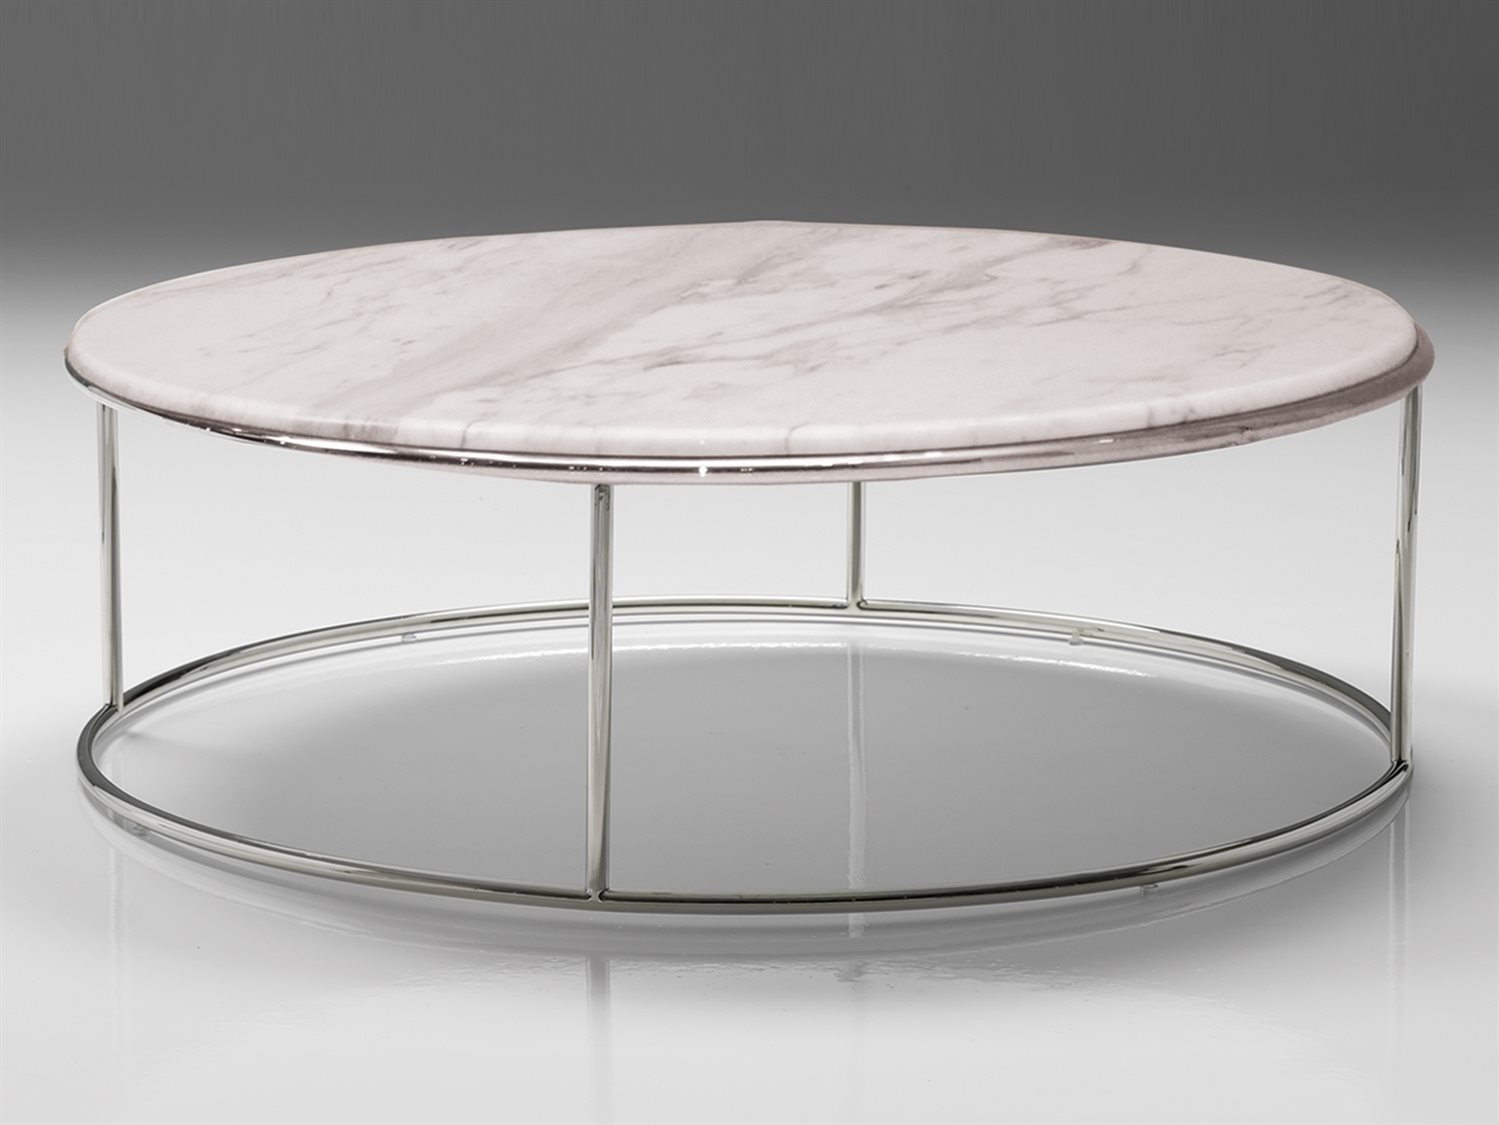 Decoration In Marble Round Coffee Table With Coffee Table Smart With Regard To Smart Round Marble Top Coffee Tables (View 10 of 30)